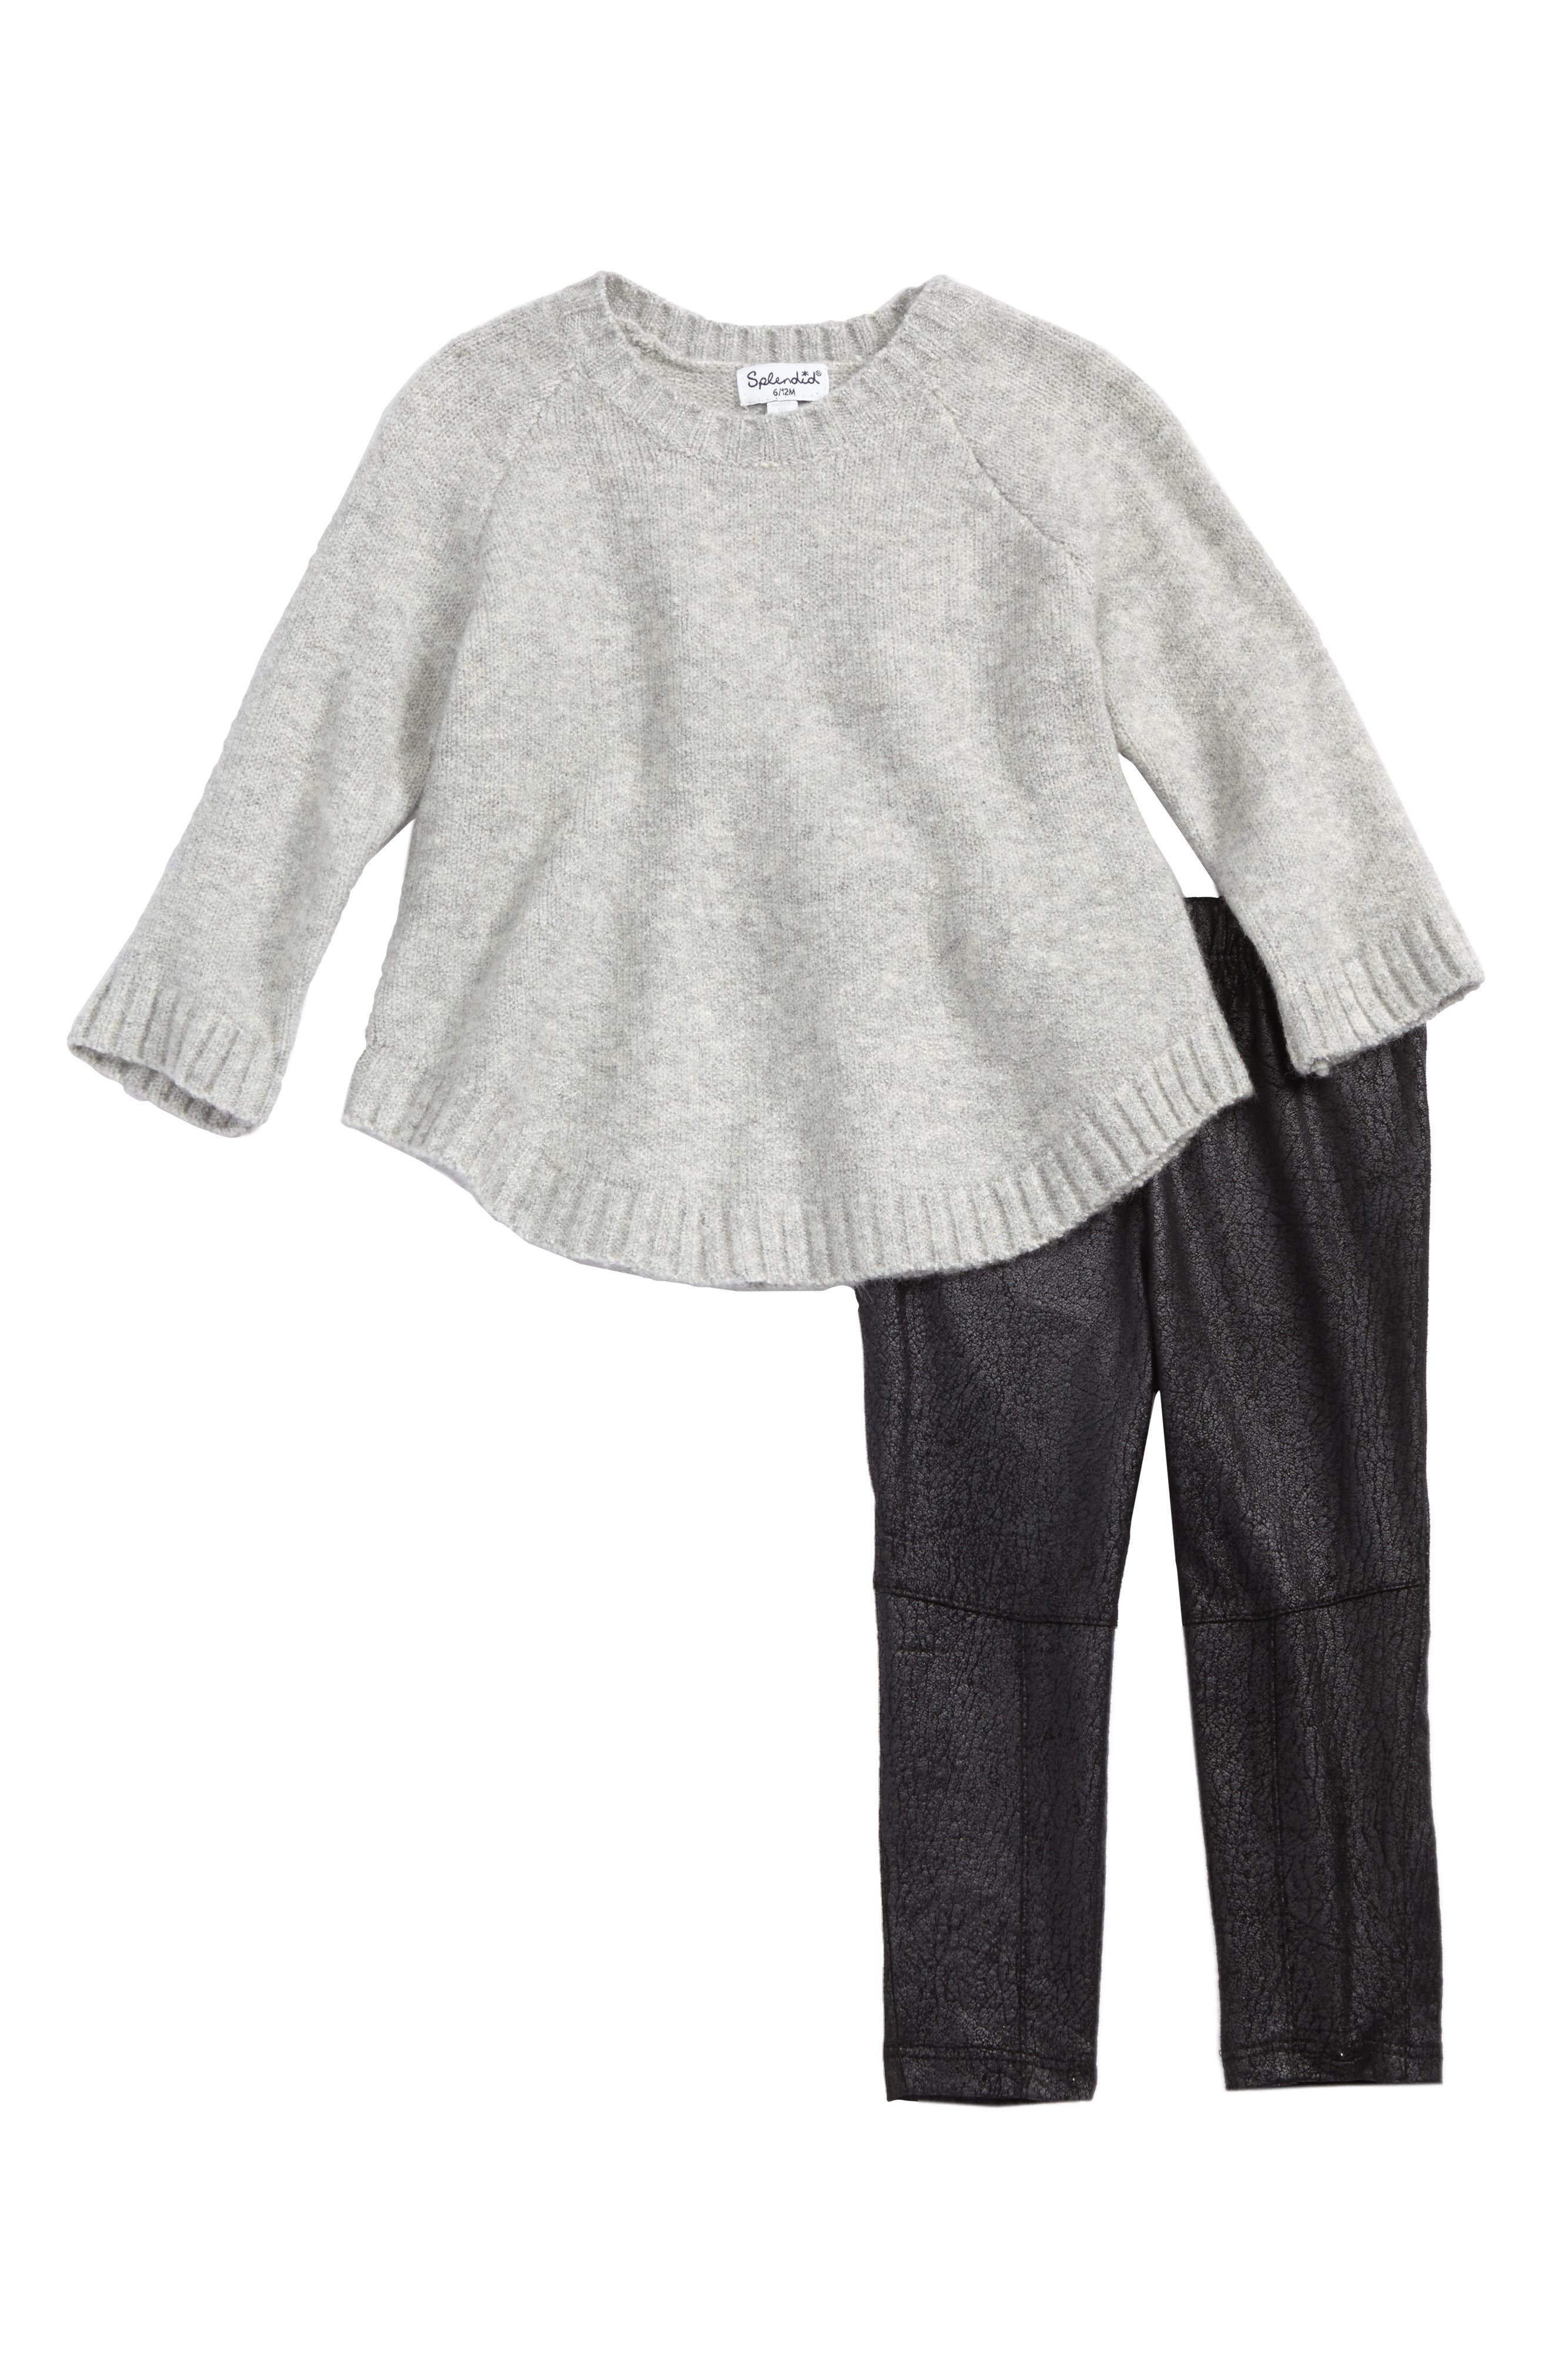 Main Image - Splendid Sweater and Faux Leather Leggings Set (Baby Girls)